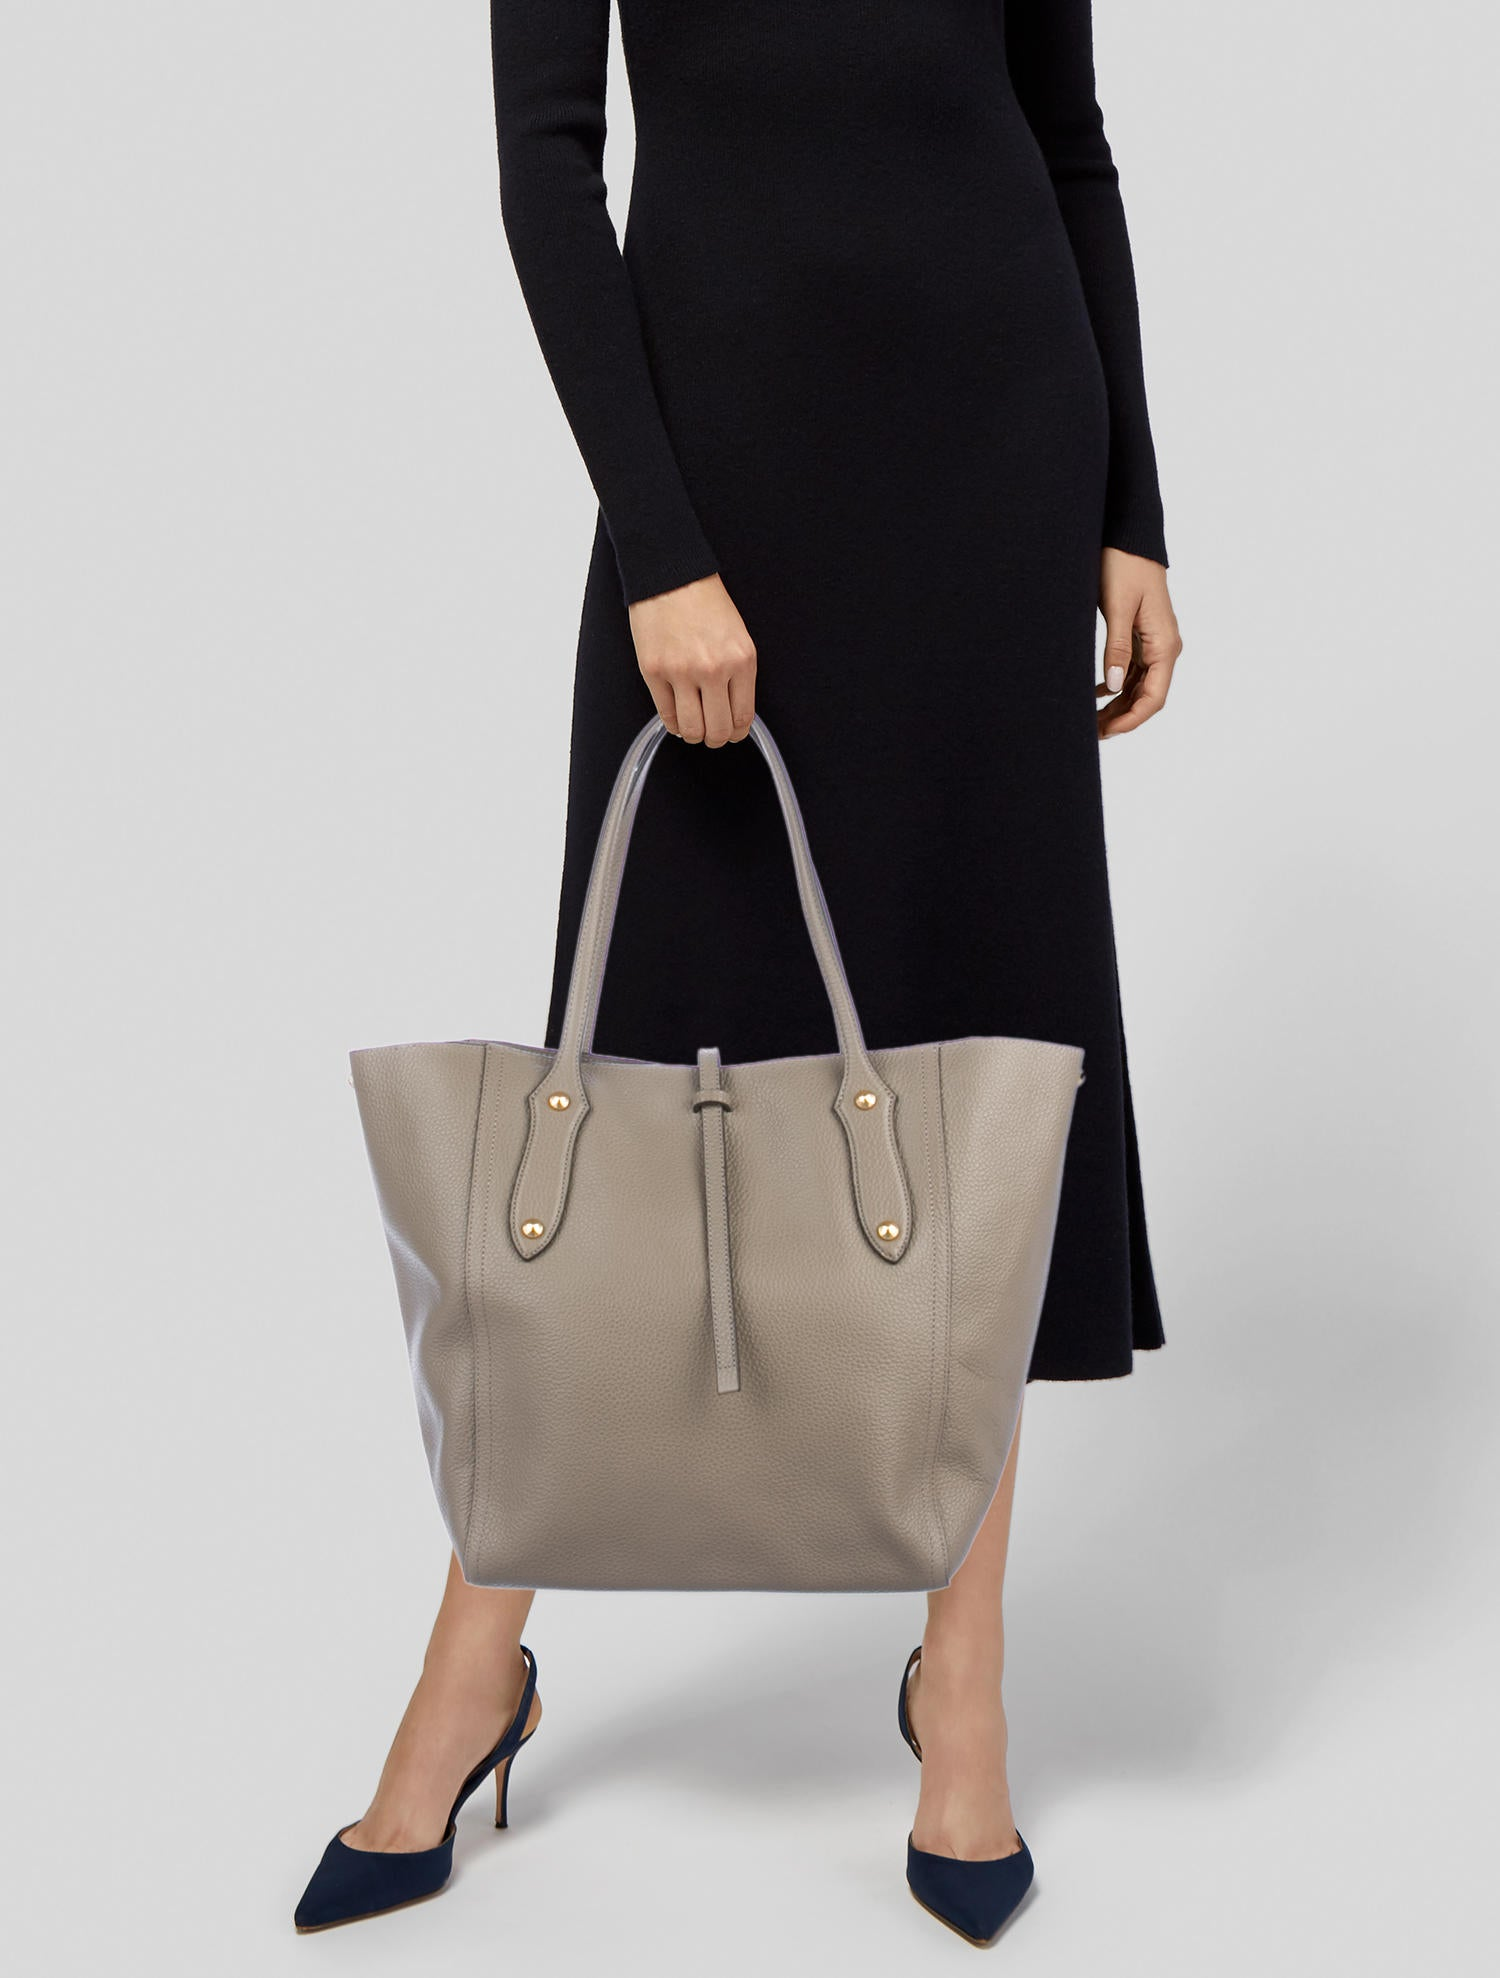 989a8c7dd7 Grained Leather Bibi Annabel Tote Ingall Tags w Tw8Eqz1E in heaven ...